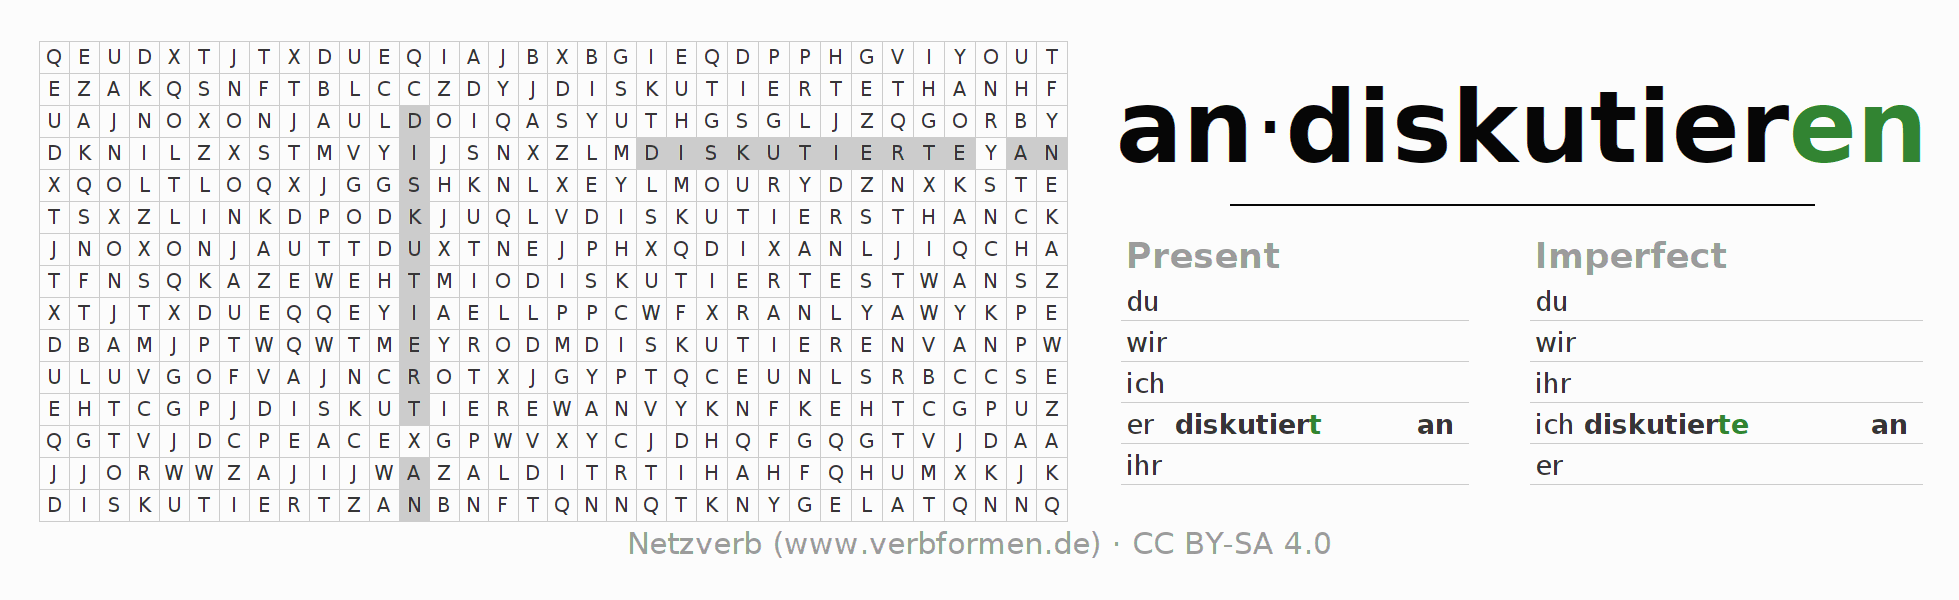 Word search puzzle for the conjugation of the verb andiskutieren